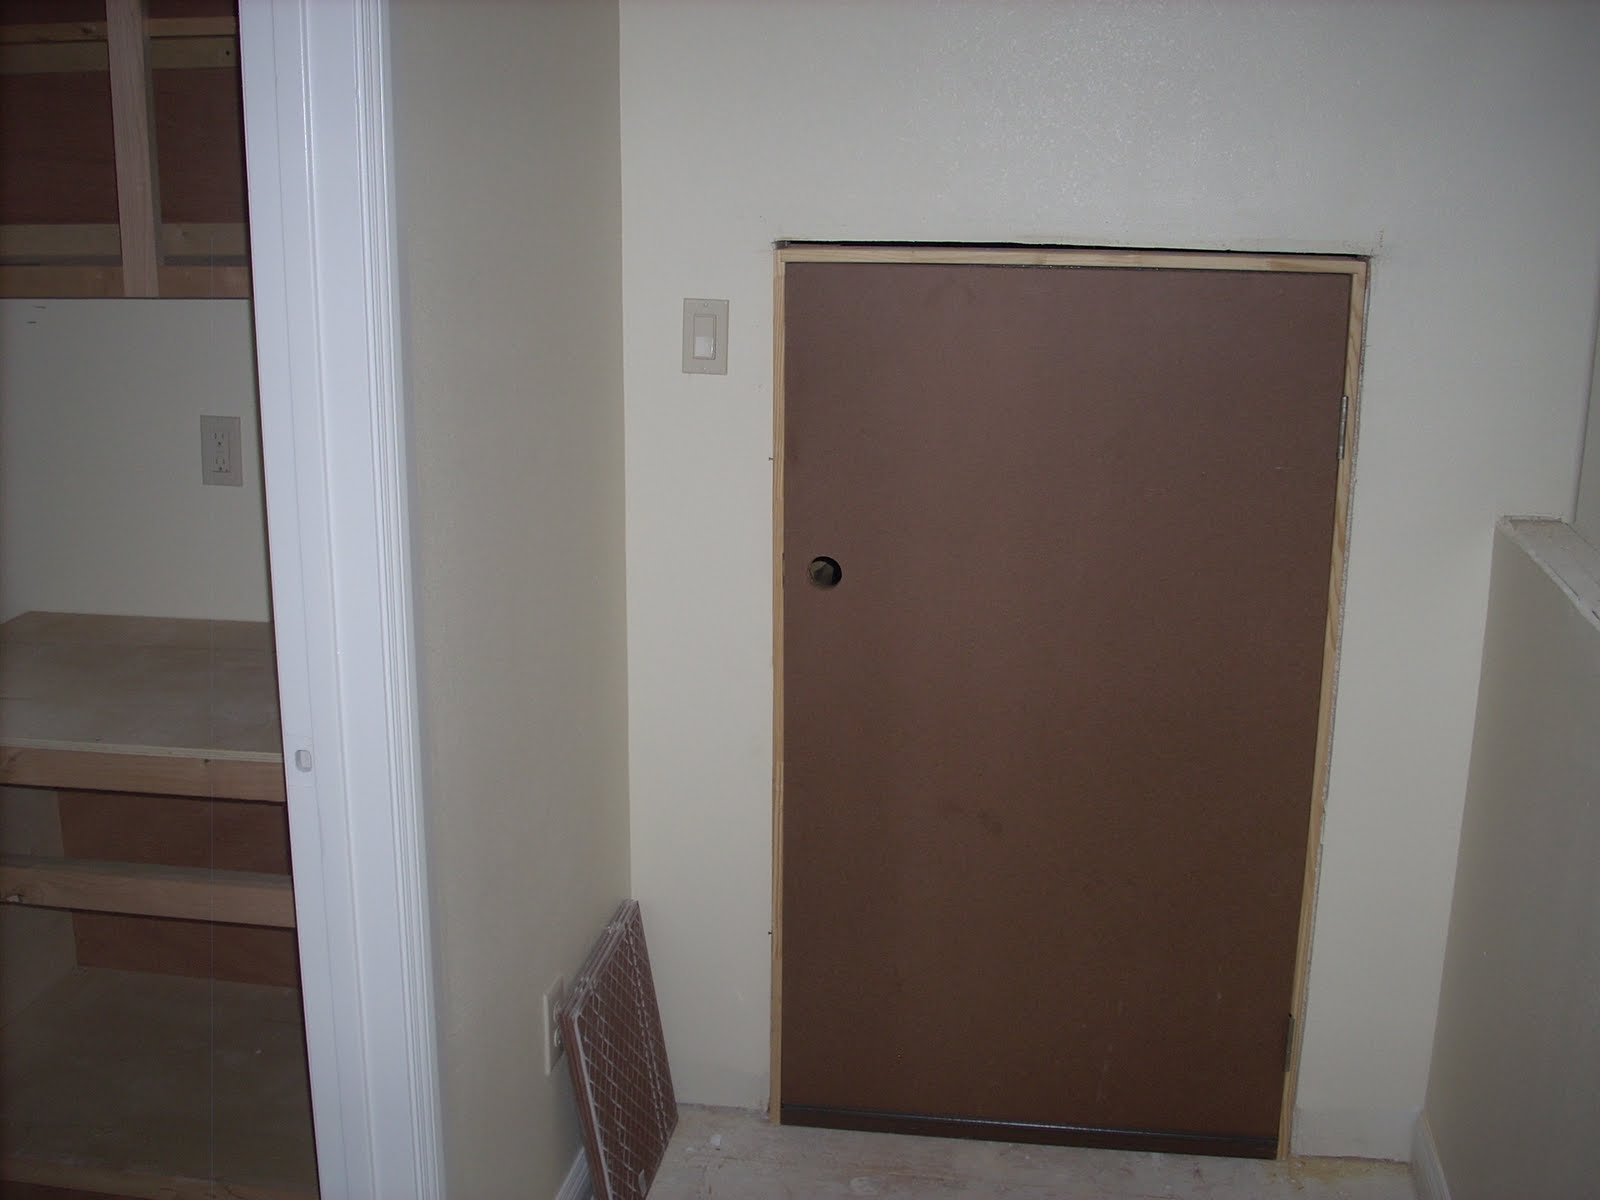 Small Access Doors : Small attic doors pictures to pin on pinterest daddy